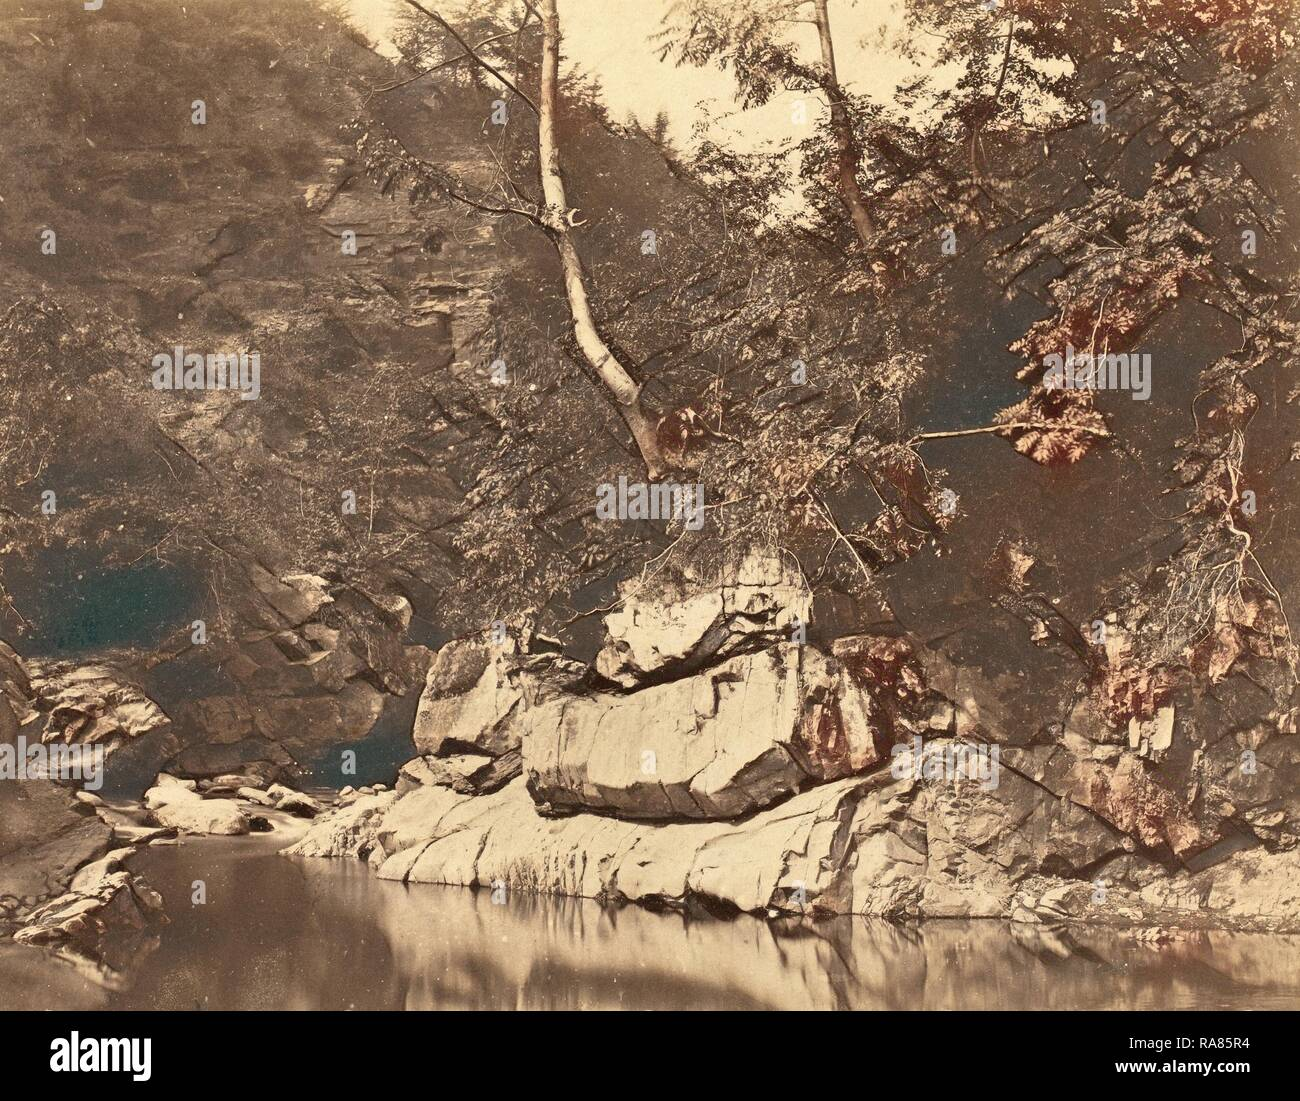 G.B. Gething (British, active c.1850s), River Scene, c. 1855, salted paper print. Reimagined by Gibon. Classic art reimagined - Stock Image